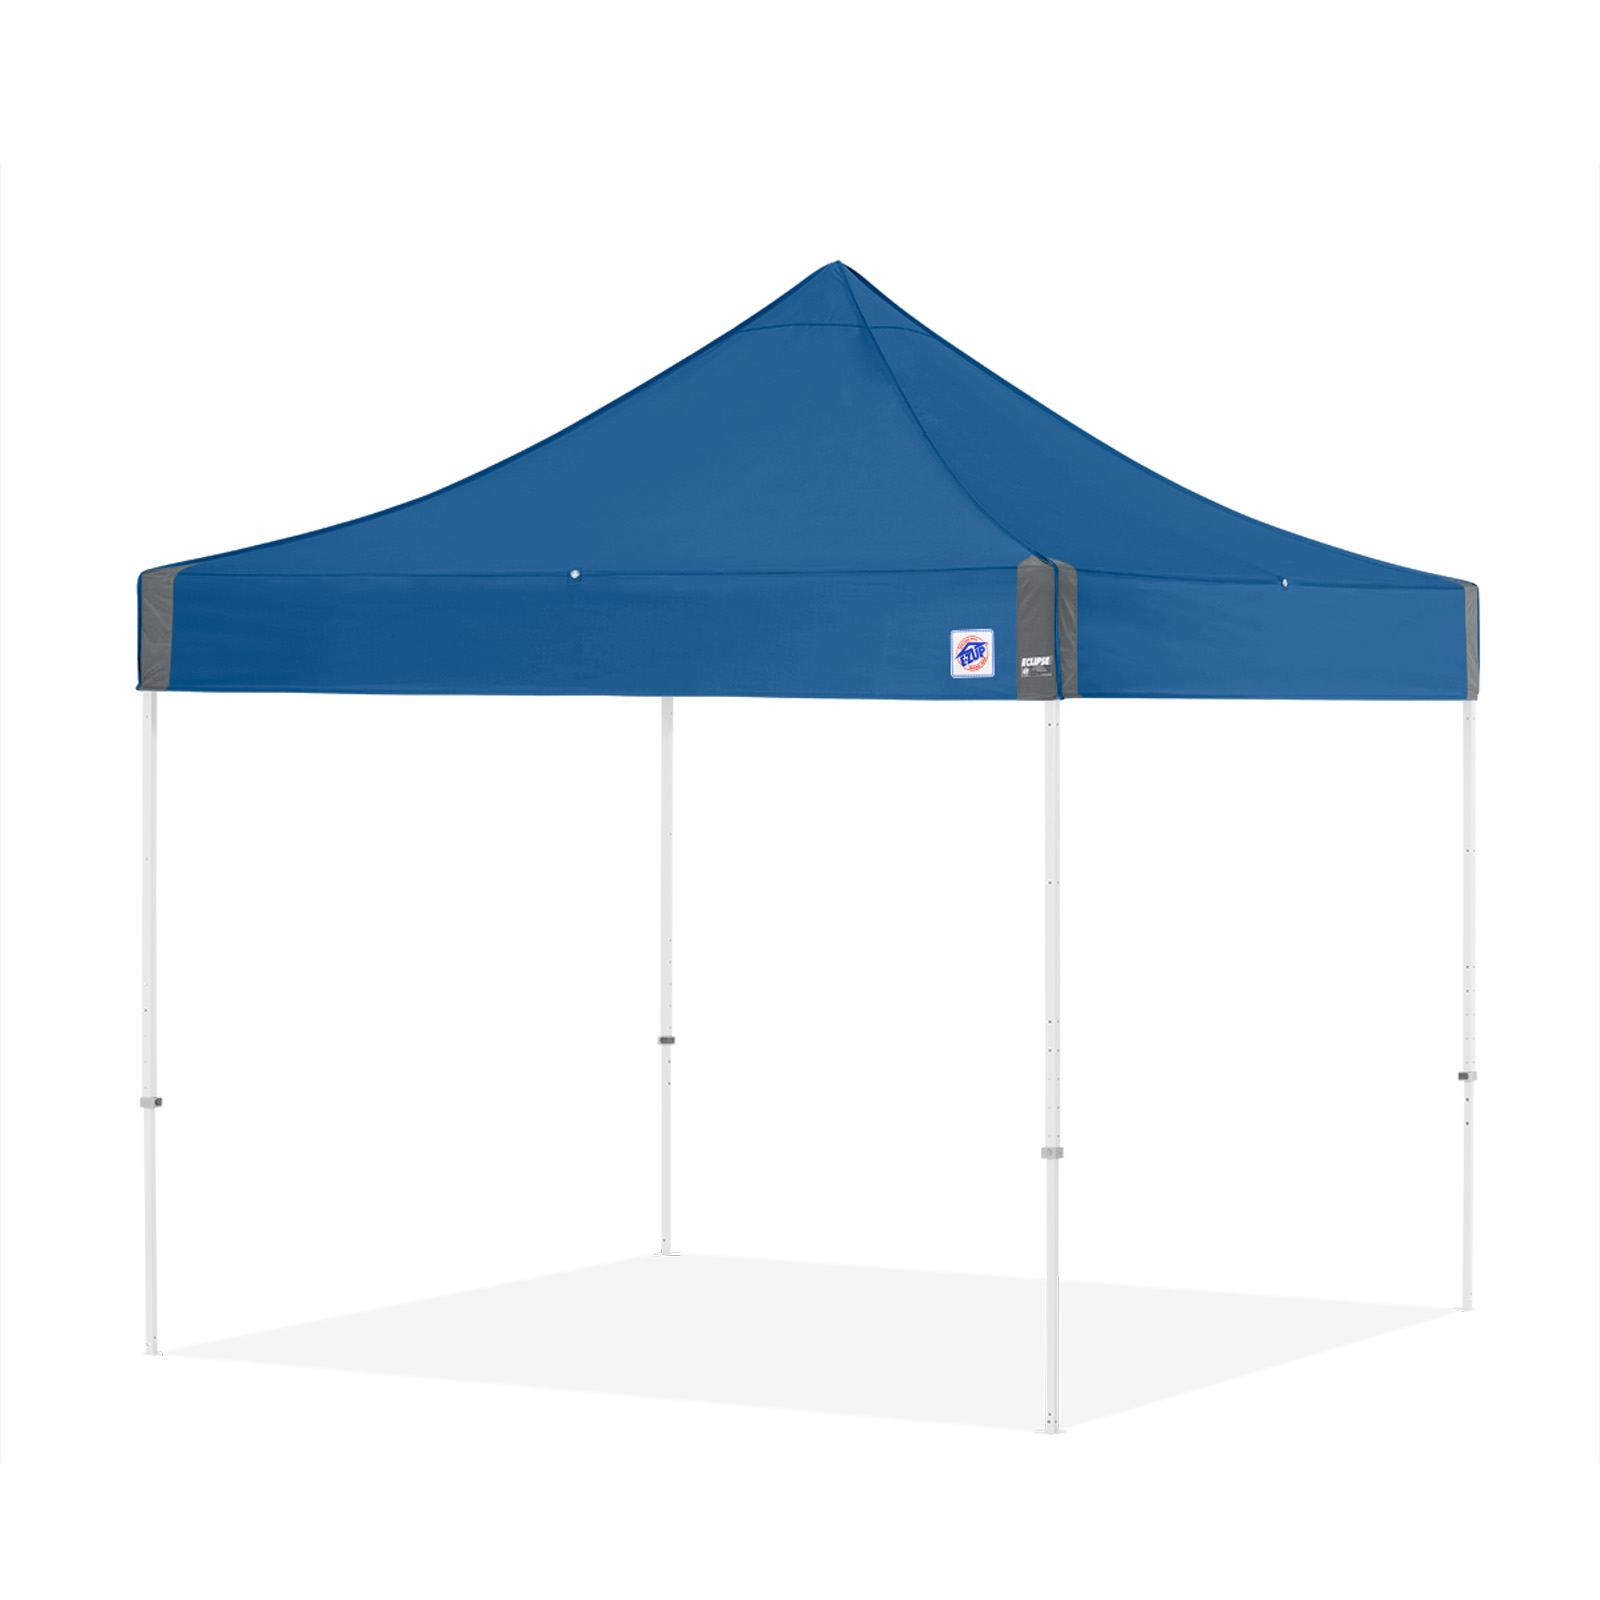 E-Z UP Eclipse 10 x 10 ft. Canopy with Carbon Steel Frame  sc 1 st  Hayneedle & 10 x 10 Canopies | Hayneedle